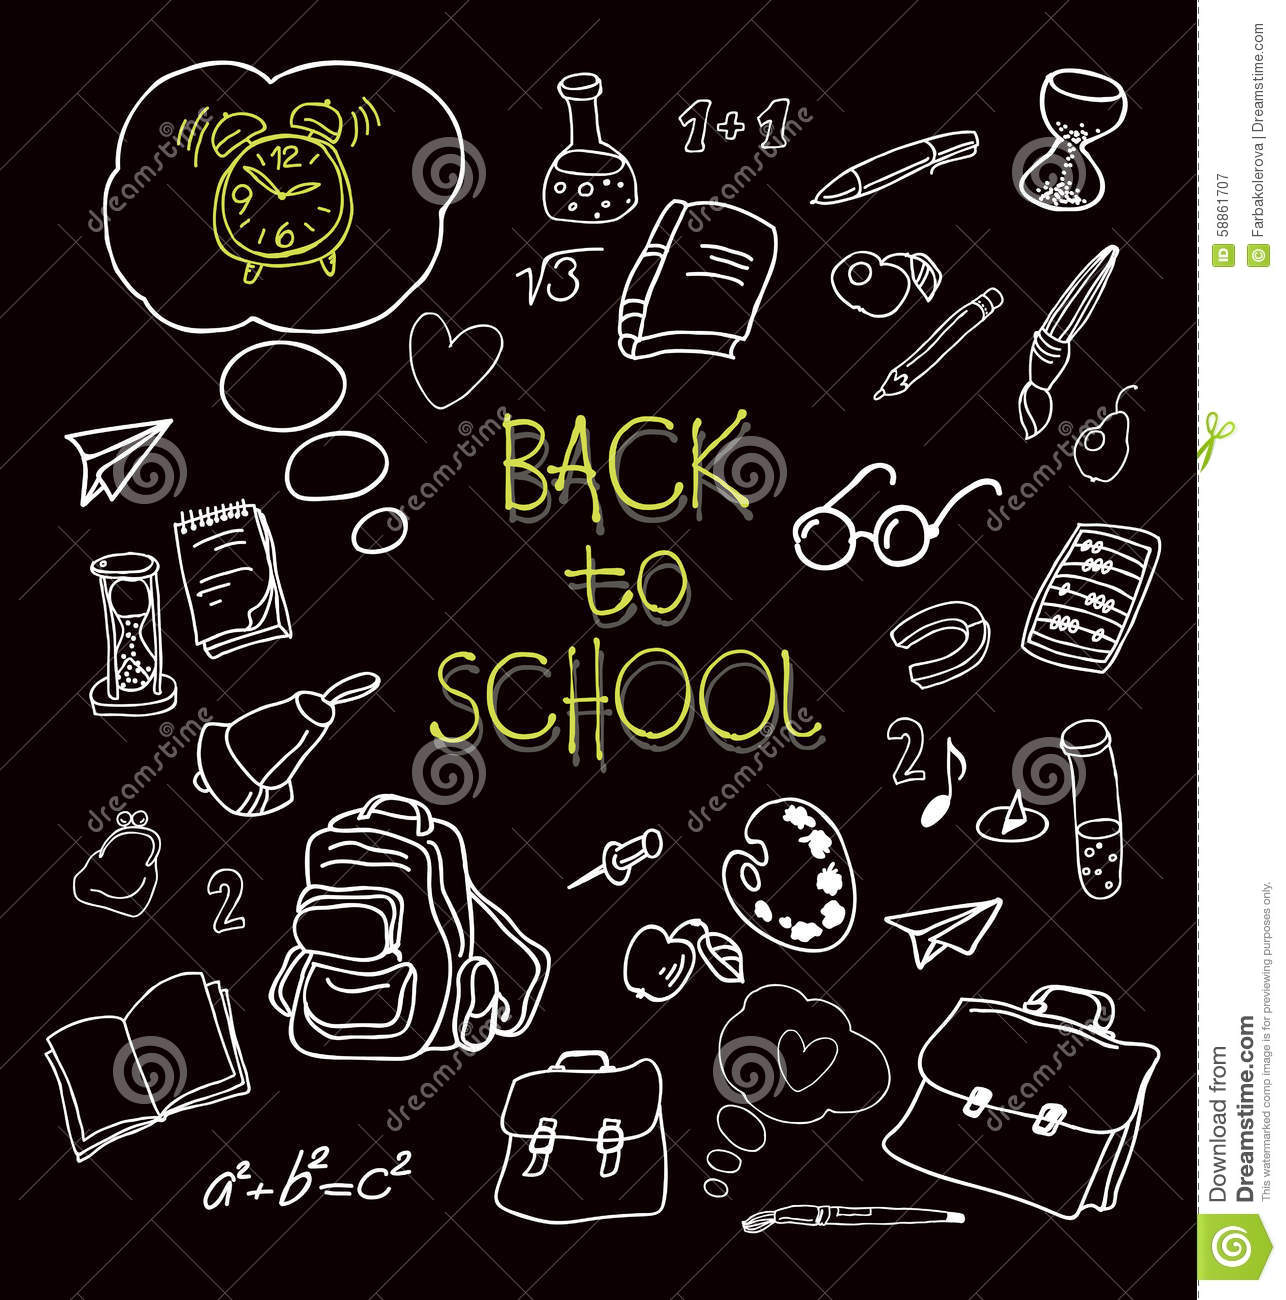 Stock Illustration Back To School Doodles Chalkboard Background Vector Hand Drawing Icons Linear Illustration Image58861707 moreover Get Grounded Protecting Electrical Devices From Lightning Transients Part 2 Of 2 as well Rlc Circuit further Nextev Nio Ep9 Laps Cota Autonomous Mode Wvideo as well 10 Second Fan On Delay Time By Transistor. on electric circuit formula